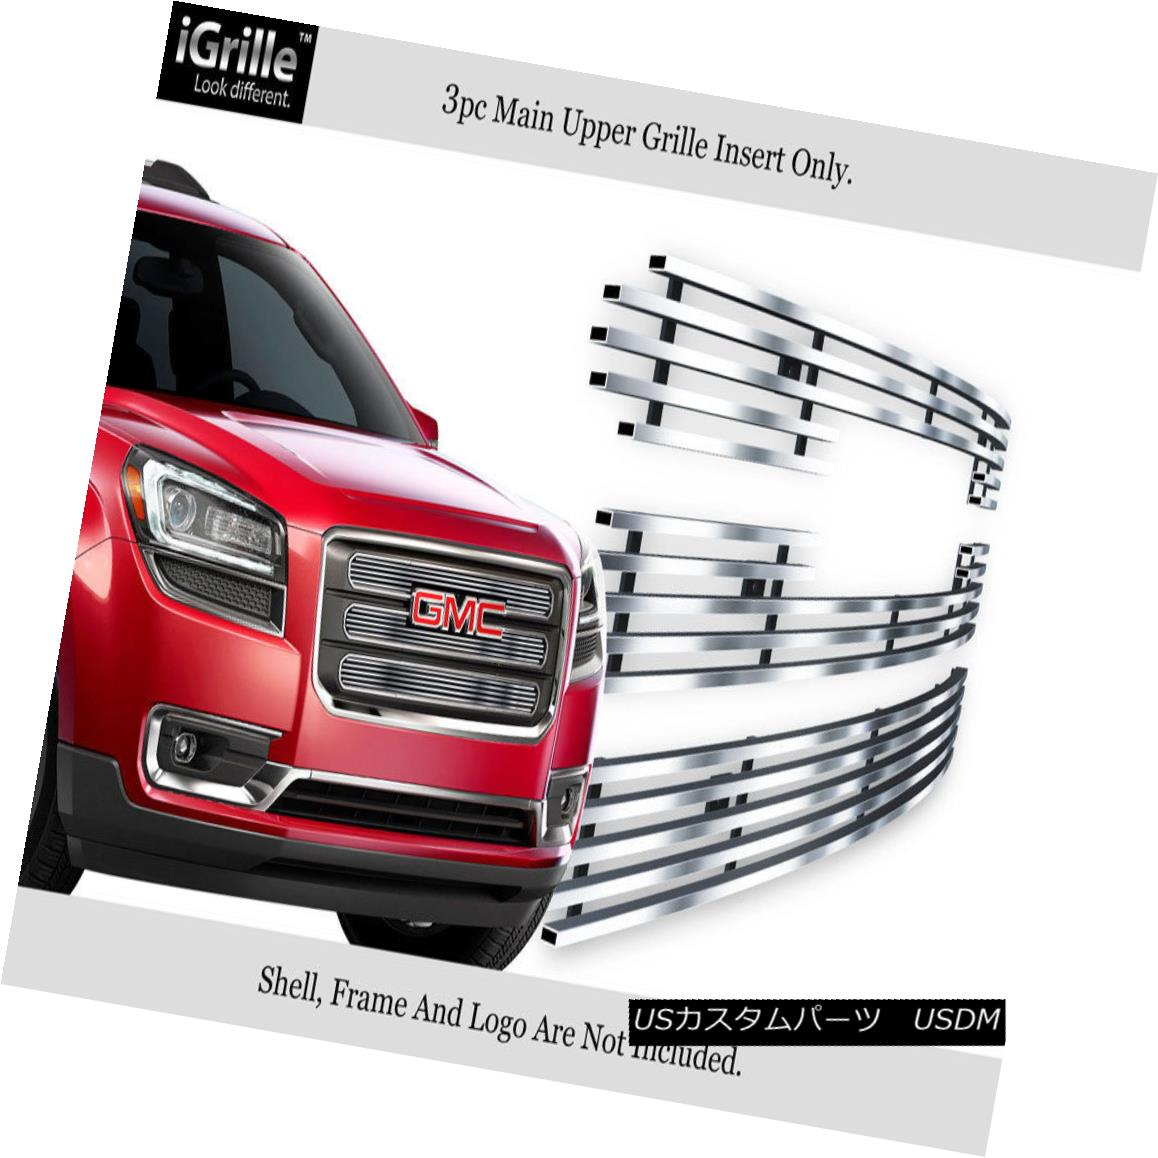 グリル For 2013-2015 GMC Acadia Chrome Stainless Steel Billet Grille with Logo Show 2013-2015 GMC Acadia Chromeステンレス鋼ビレットグリルロゴ付き